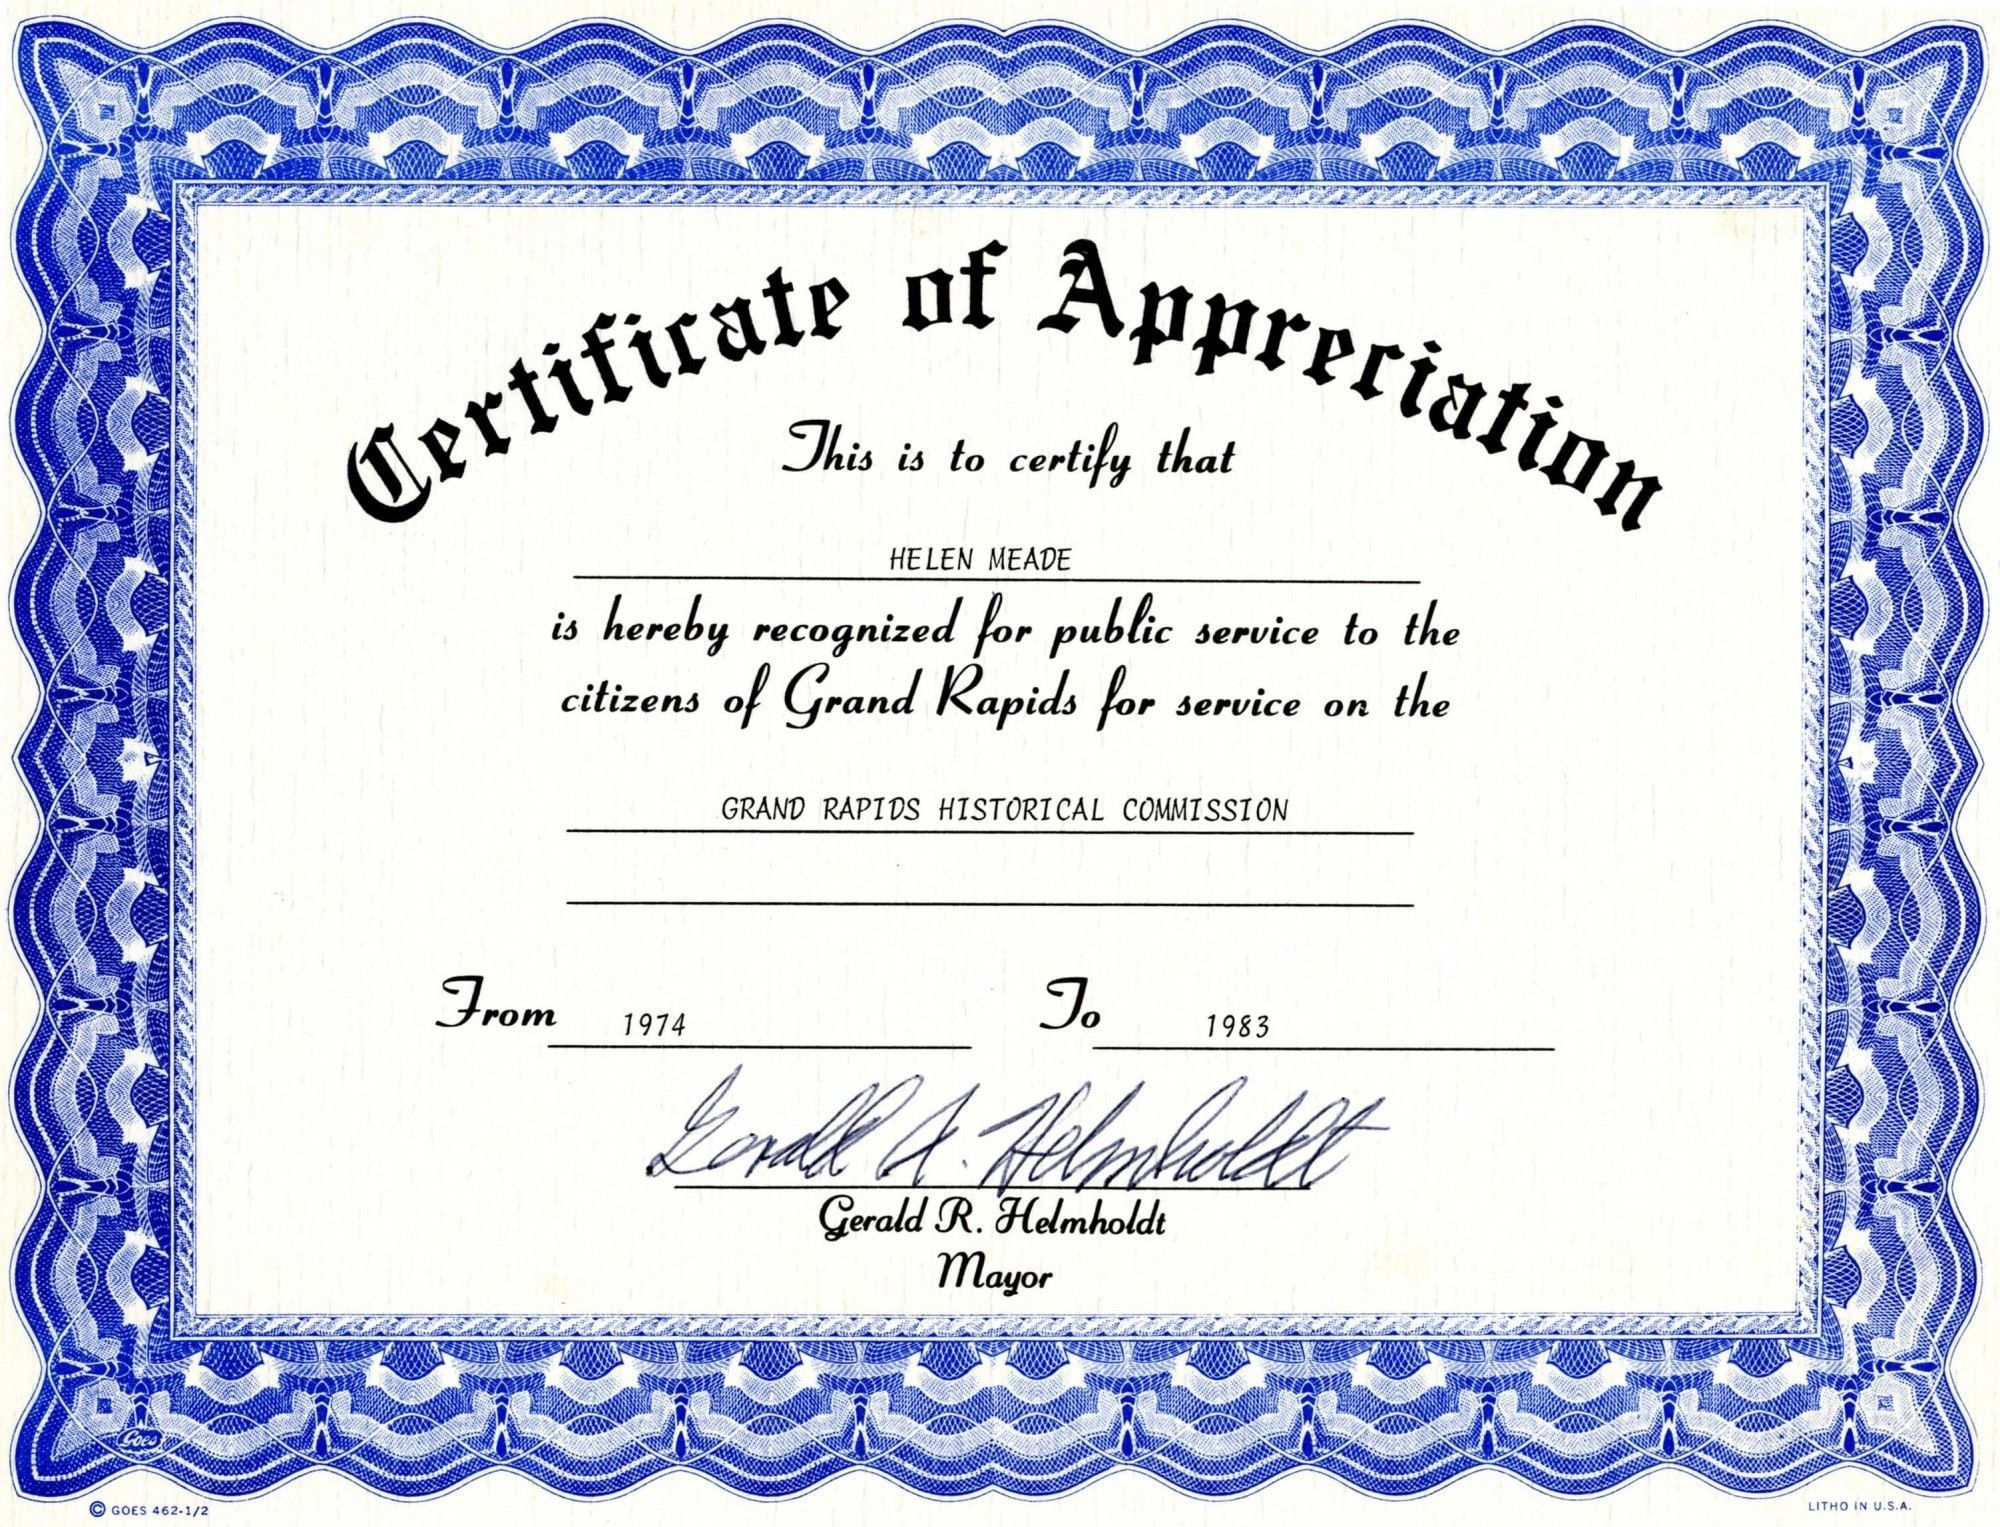 012 Formidable Certificate Of Recognition Template Word Idea  Award Microsoft FreeFull